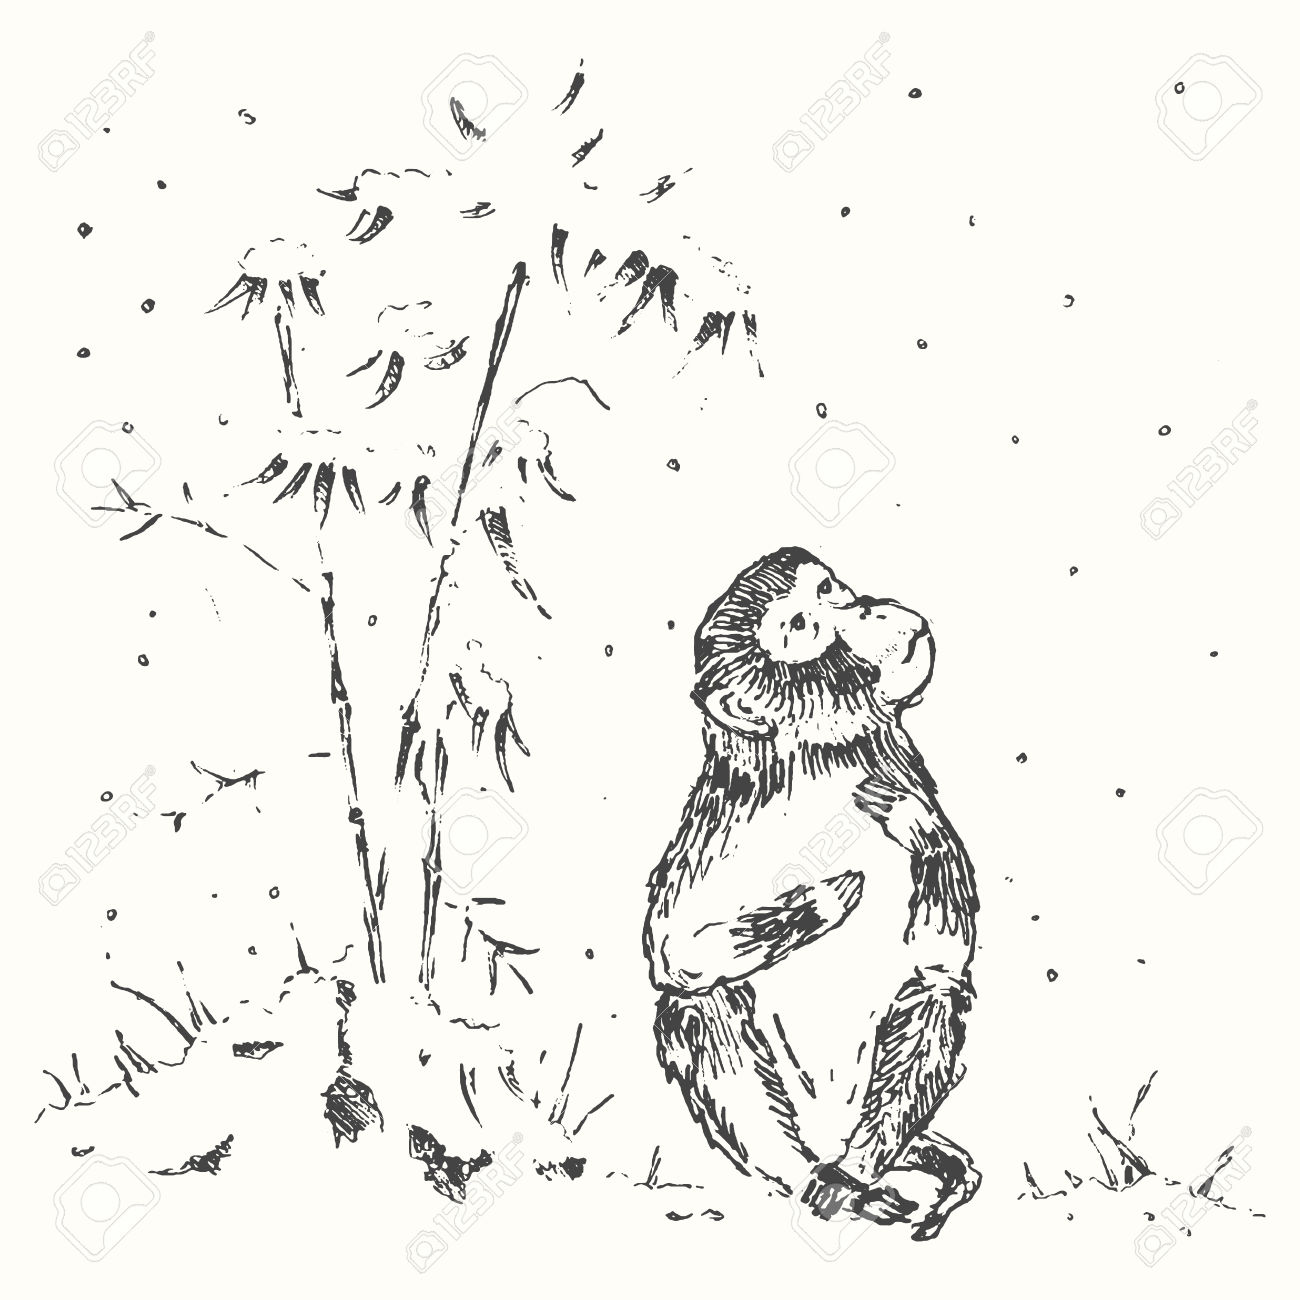 47840317-Traditional-Chinese-illustration-of-monkey-with-bamboo-and-snow-monkey-year-greeting-card-Chinese-zo-Stock-Vector.jpg